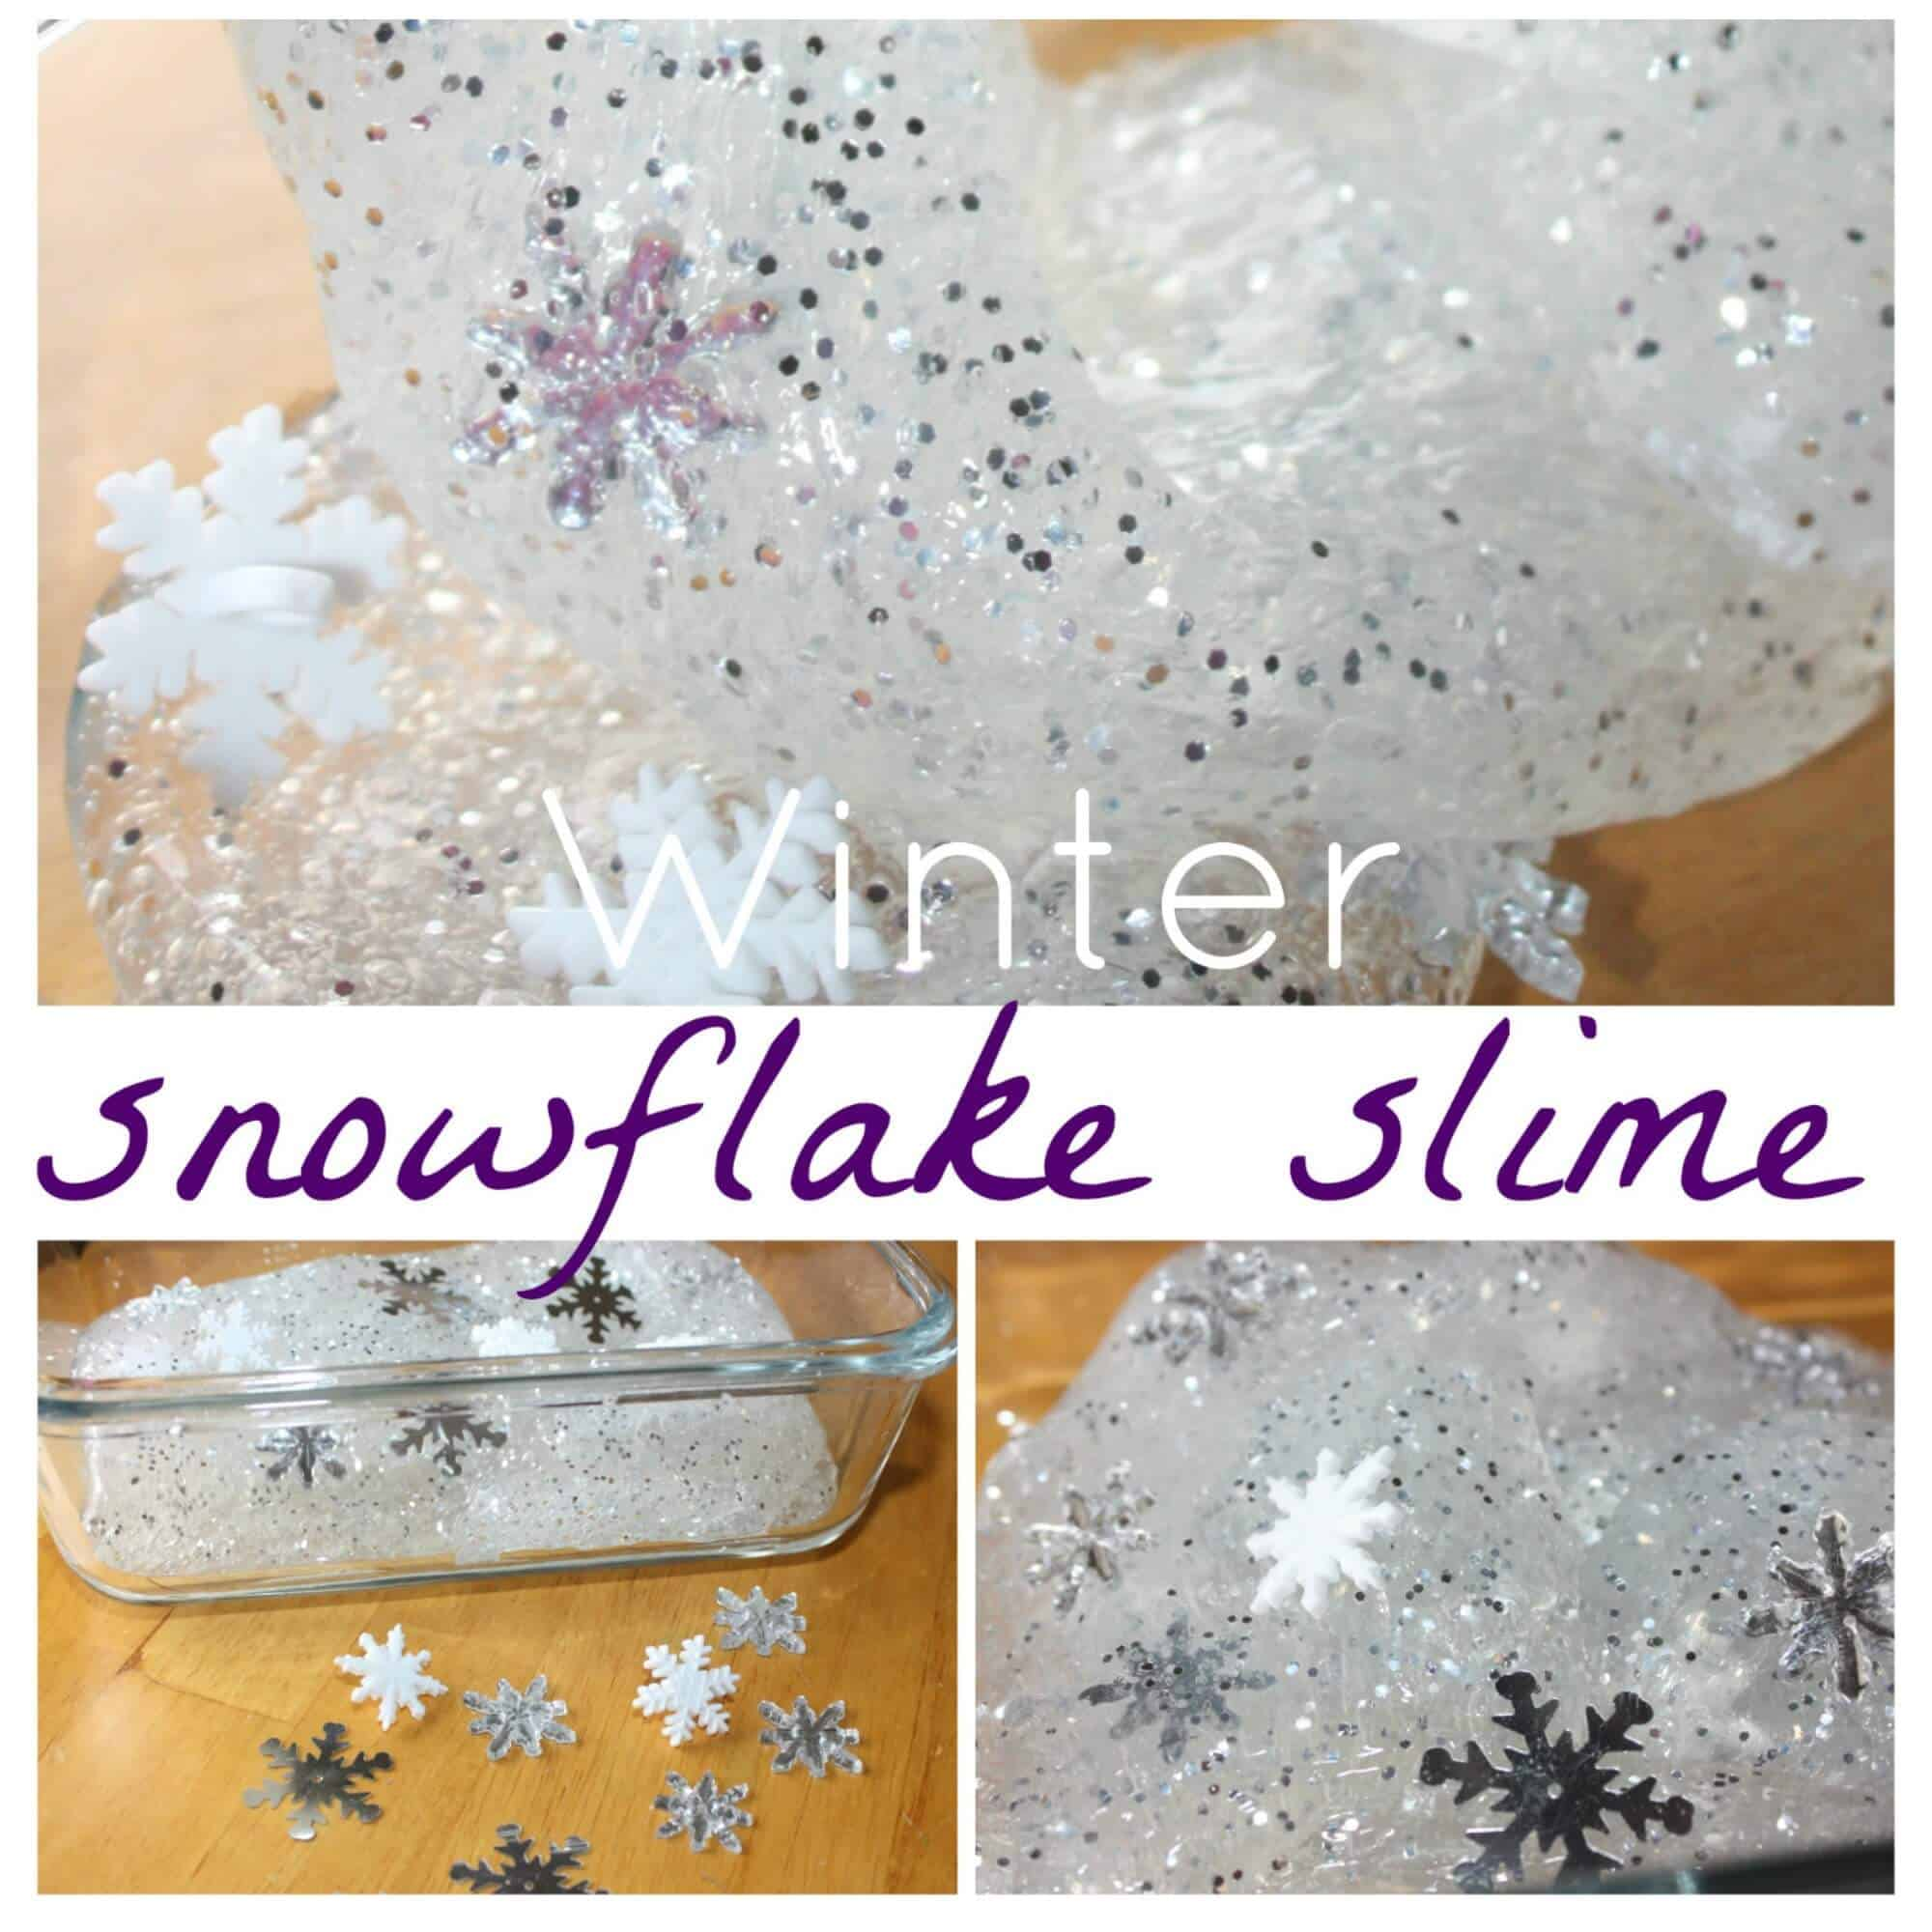 Sparkly winter snowflake slime